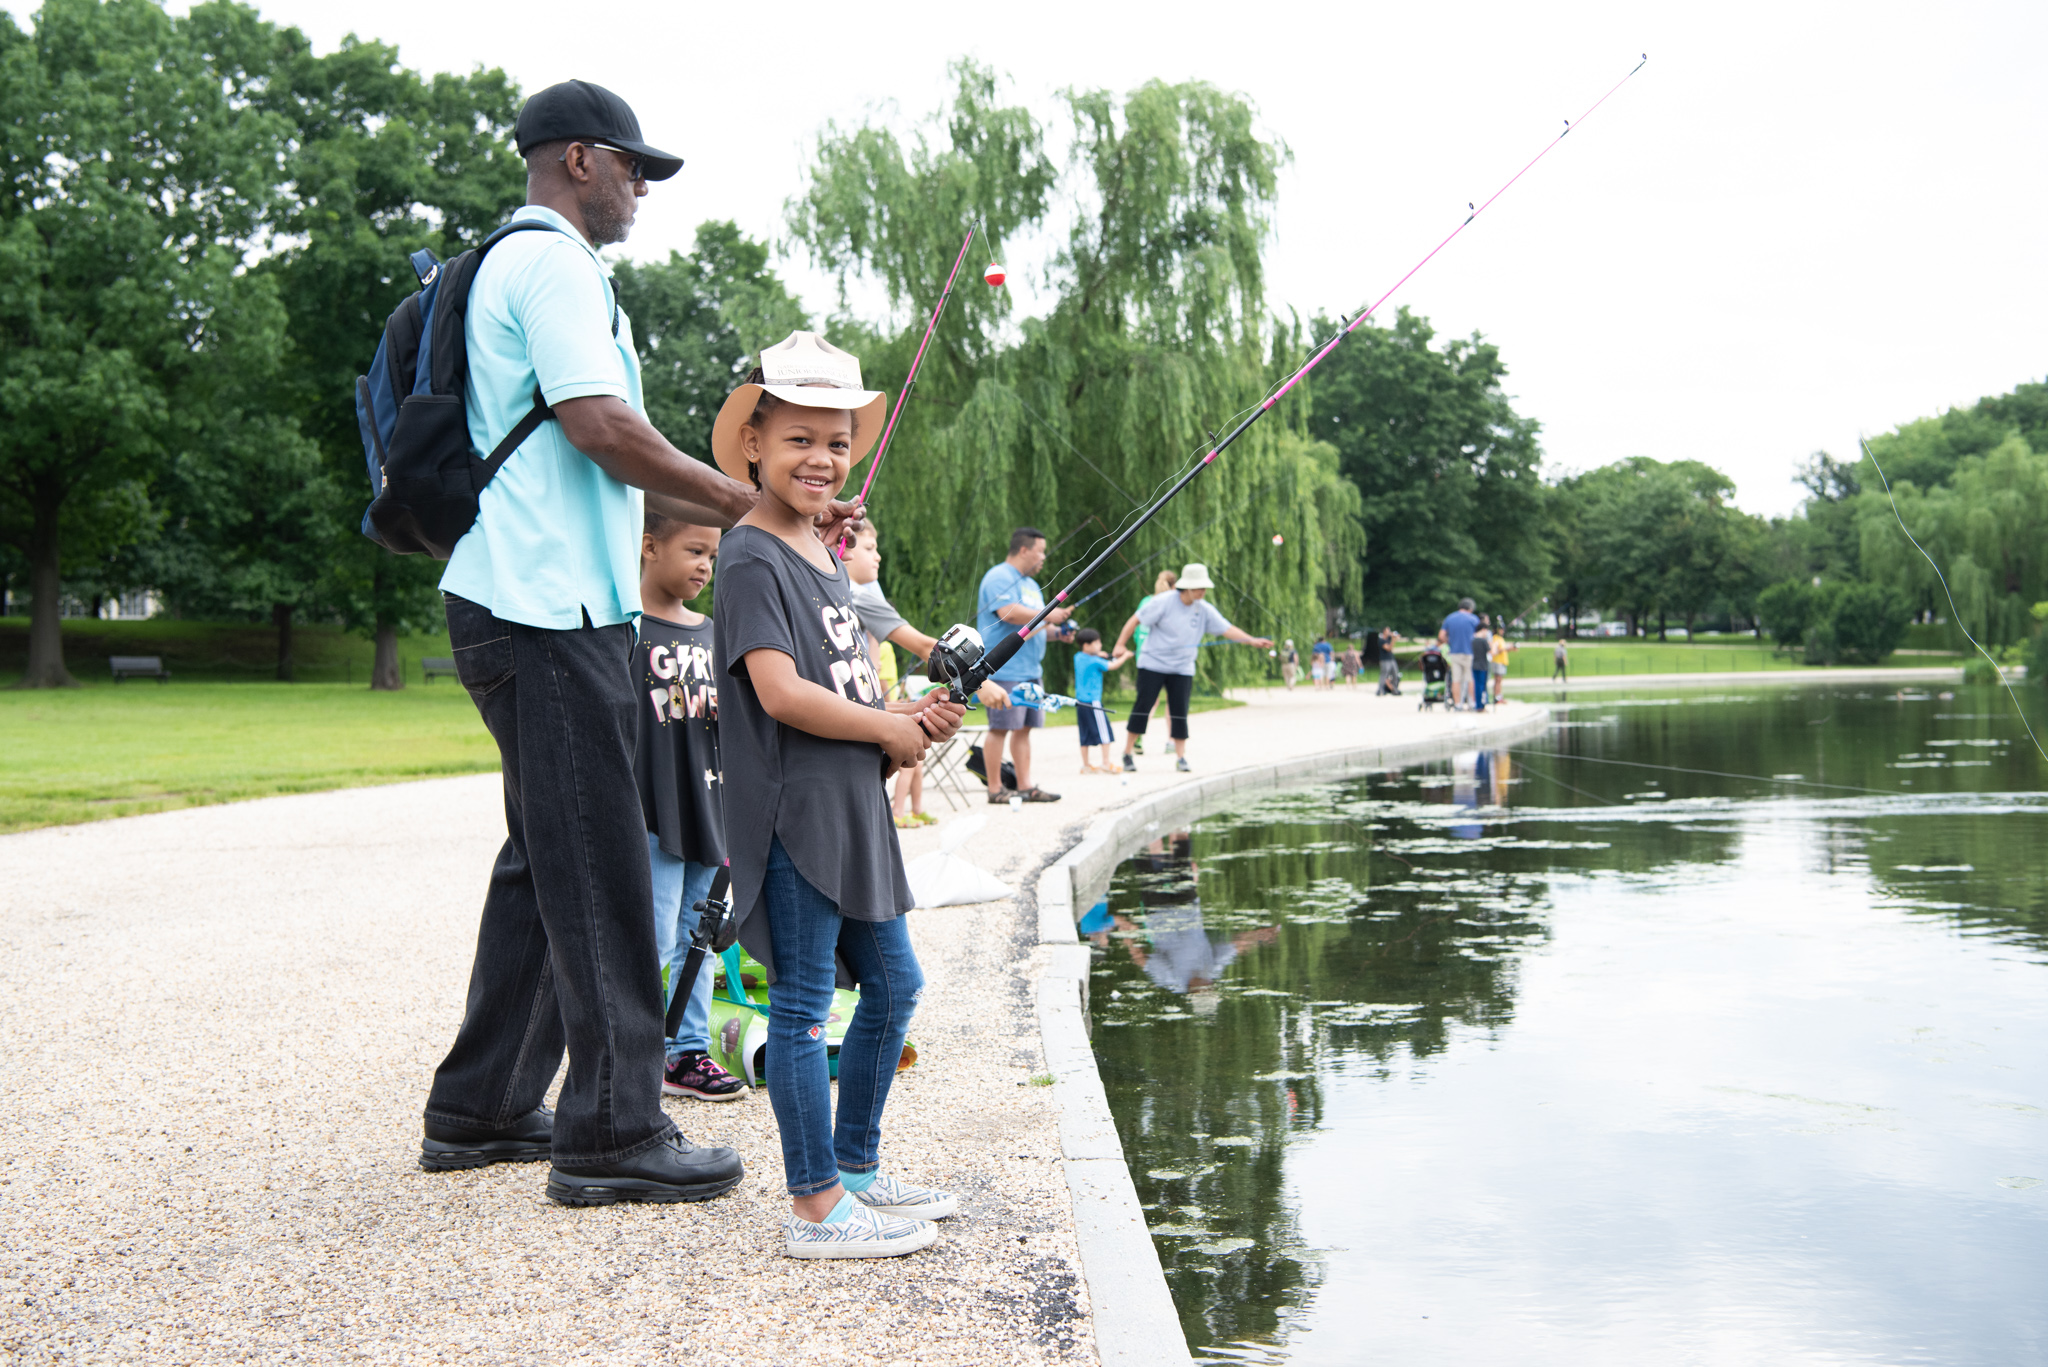 To officially kick off National Boating and Fishing Week,{ }Urban American Outdoors TV partnered with{ }the US Forest Service, US Fish & Wildlife, NPS Healthy Parks Healthy People, National Wildlife Federation, and the Bureau of Land Management to co-host the fourth annual Urban Kids Fishing Derby.{ } The catch and release derby was free, open to the public and intended to celebrate kids connecting with nature, fishing and public lands. Families gathered at Constitution Gardens on the Mall to learn from rangers about fishing best practices, before competing to see who could catch the biggest fish! (Image: Jeff Martin)